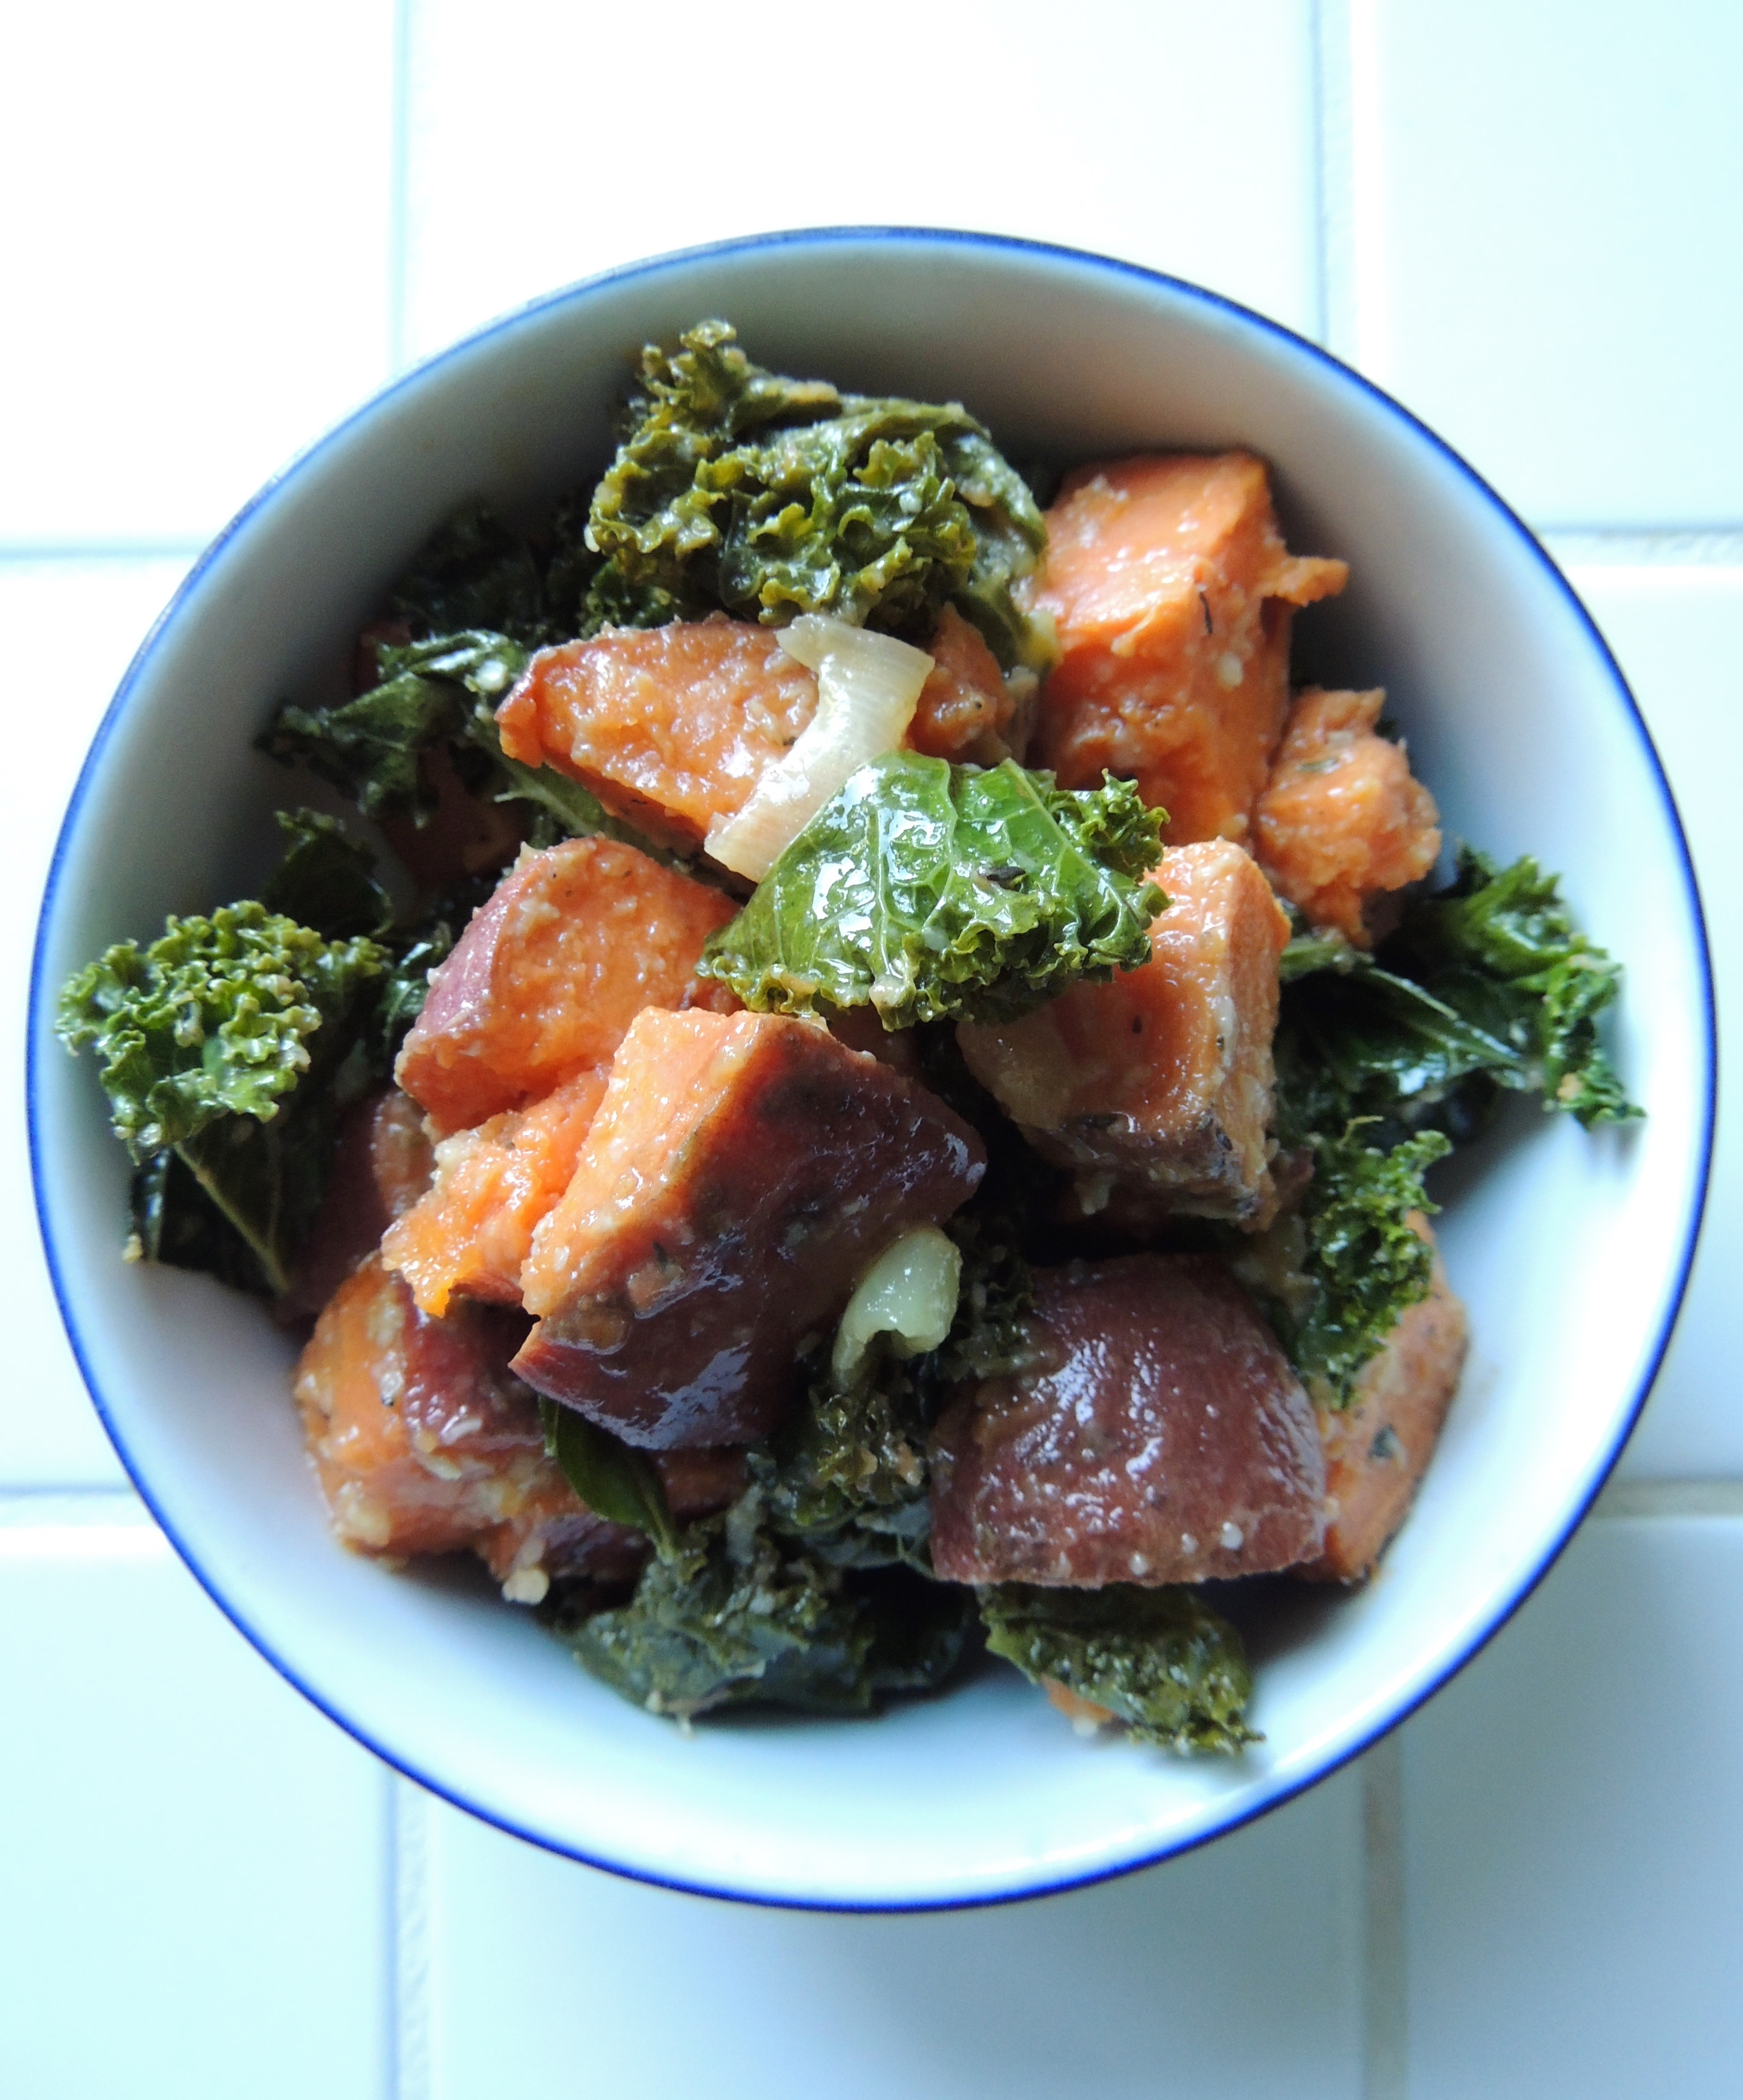 Living Healthy In Seattle: Garlicky Roasted Yams & Kale